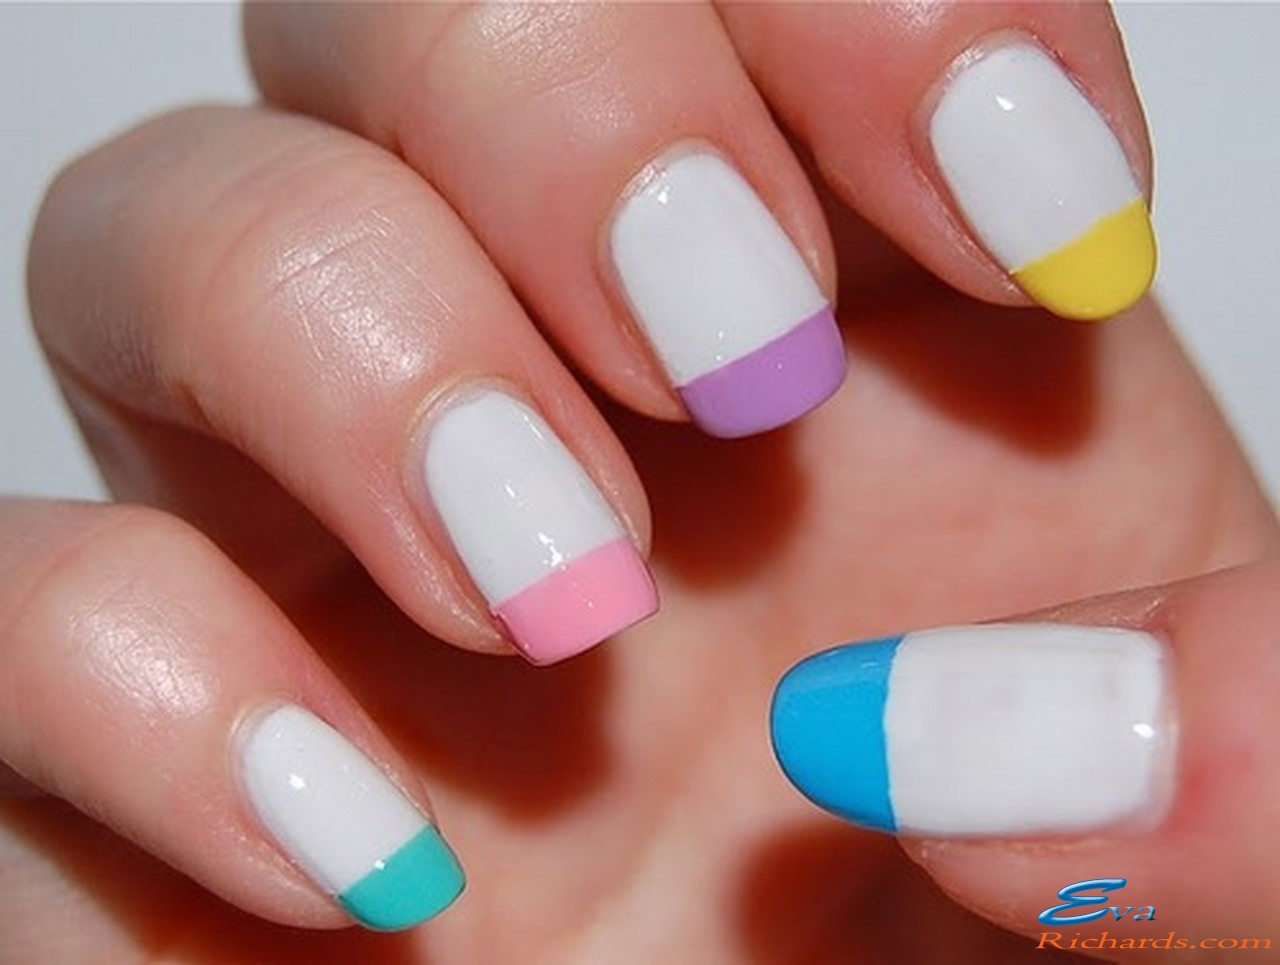 Fancy nails21